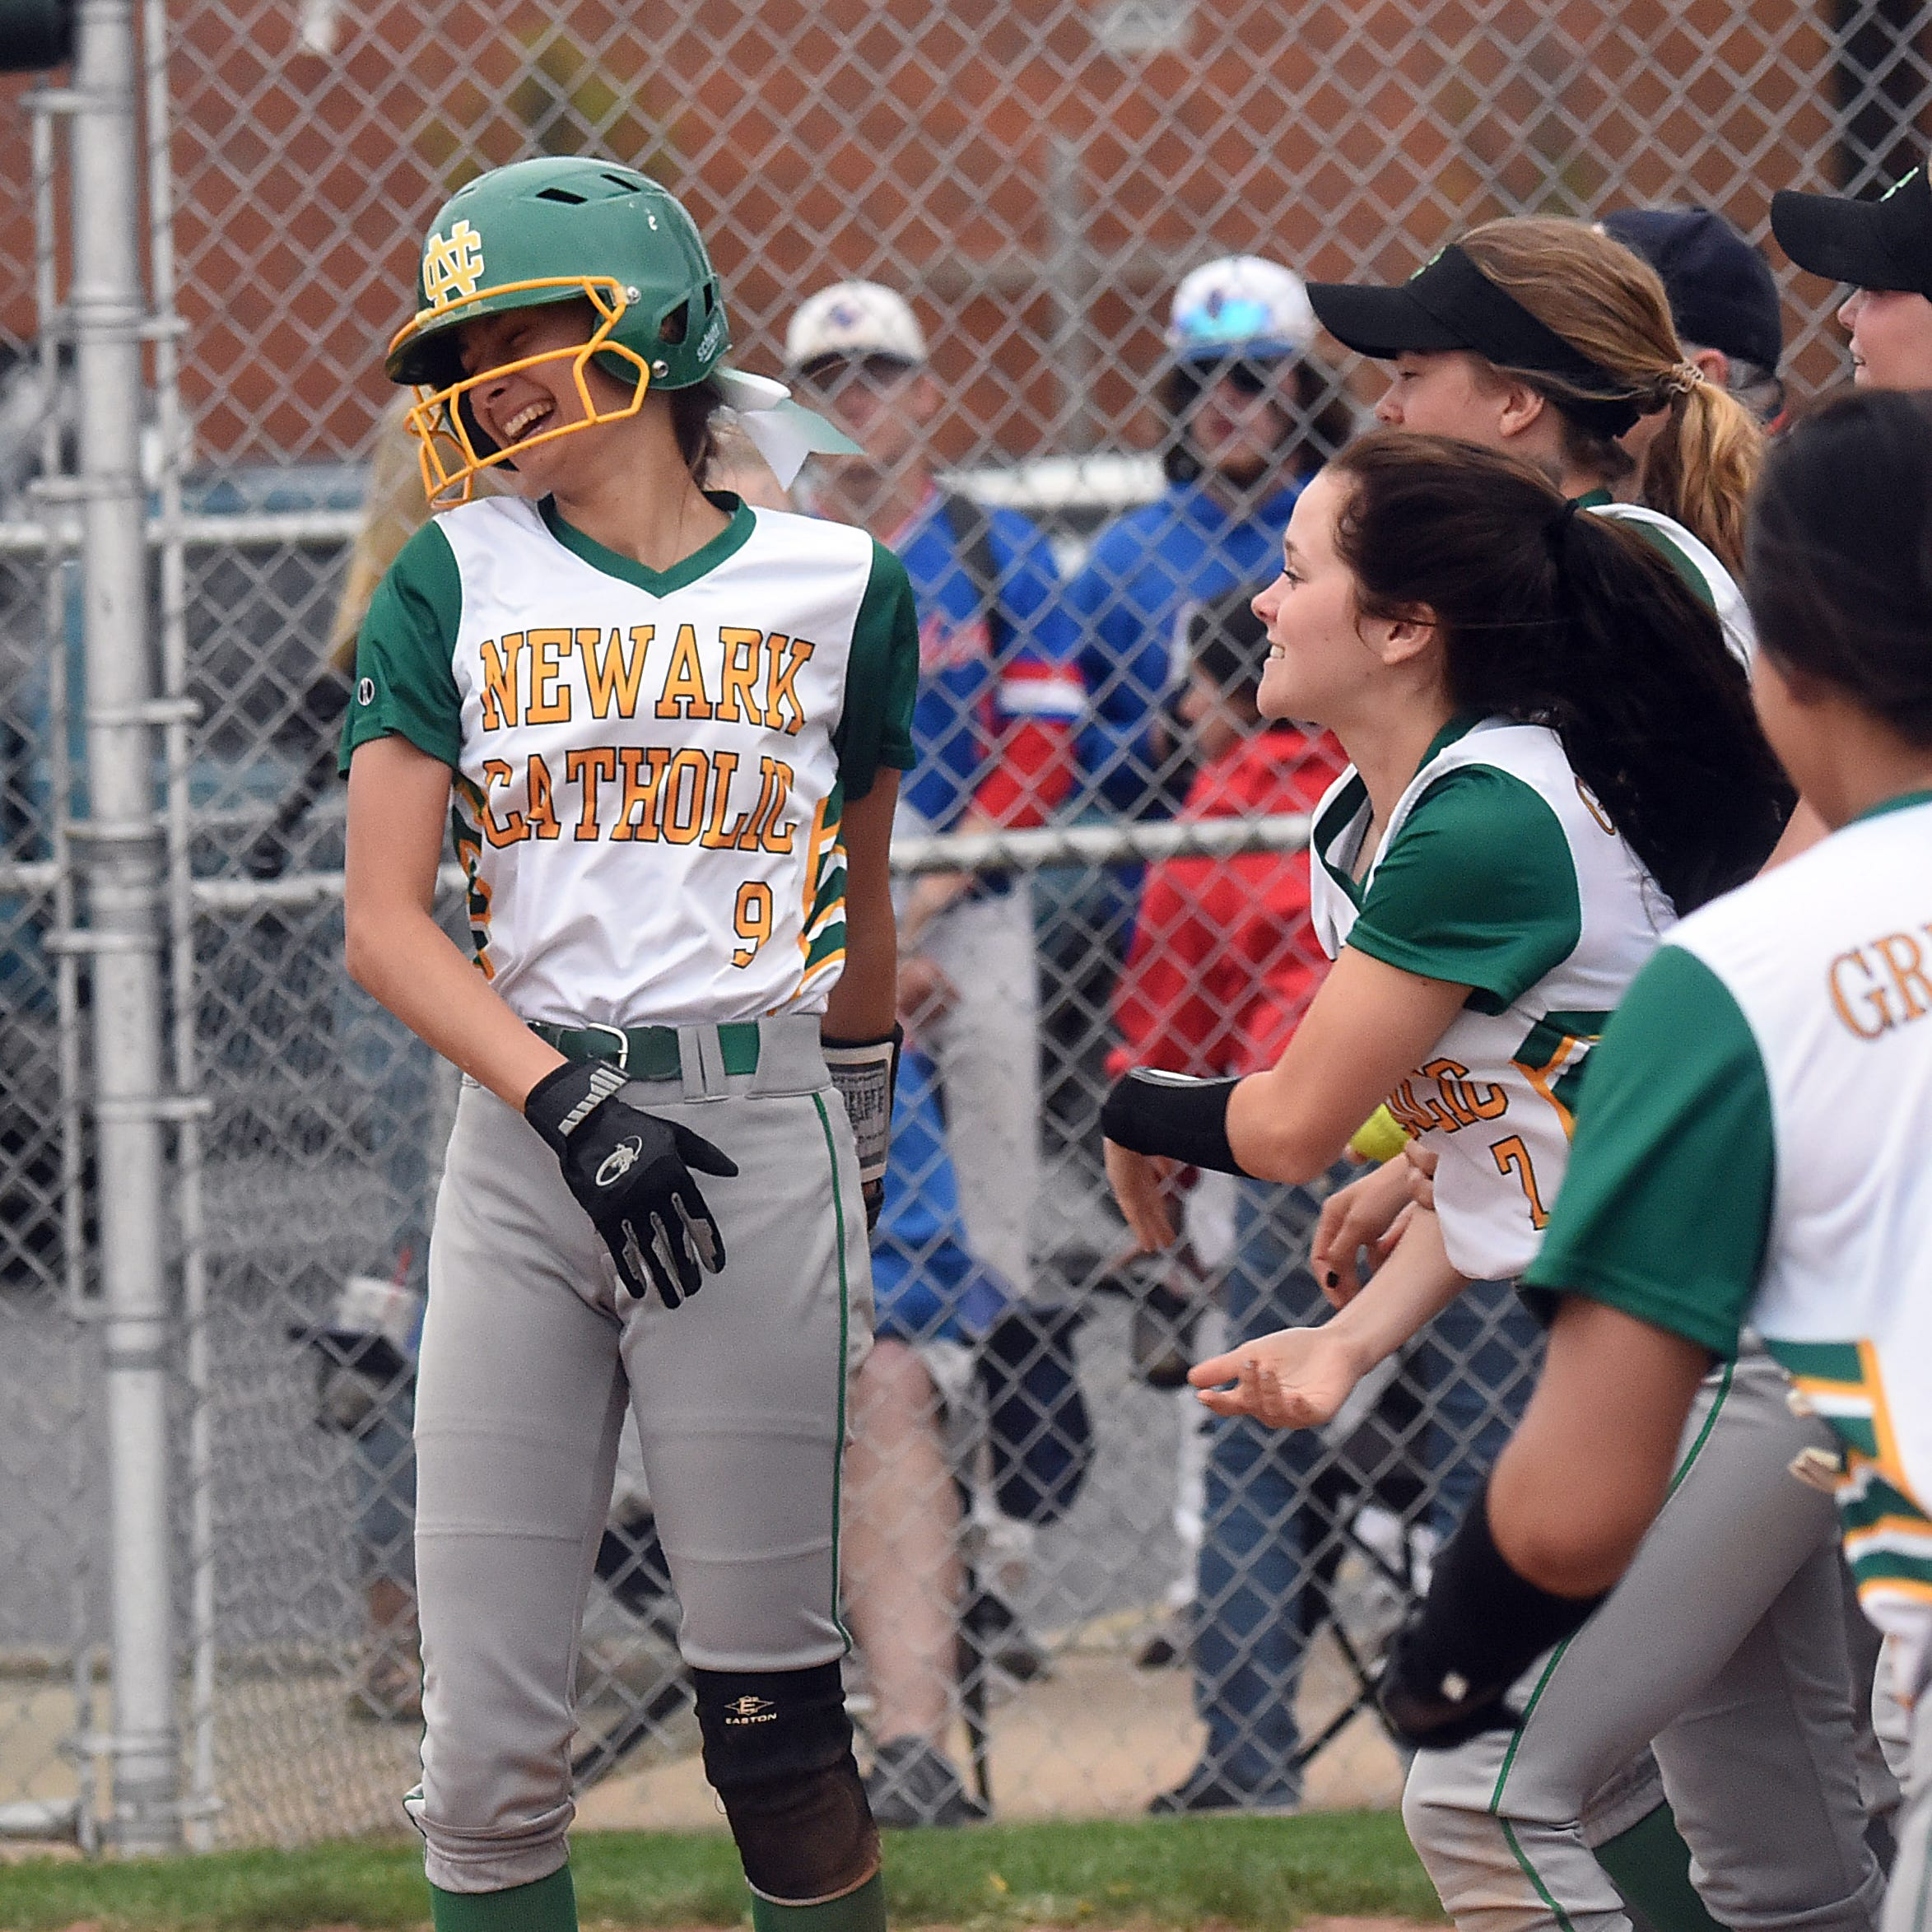 Determined Newark Catholic softball gets dramatic rivalry win